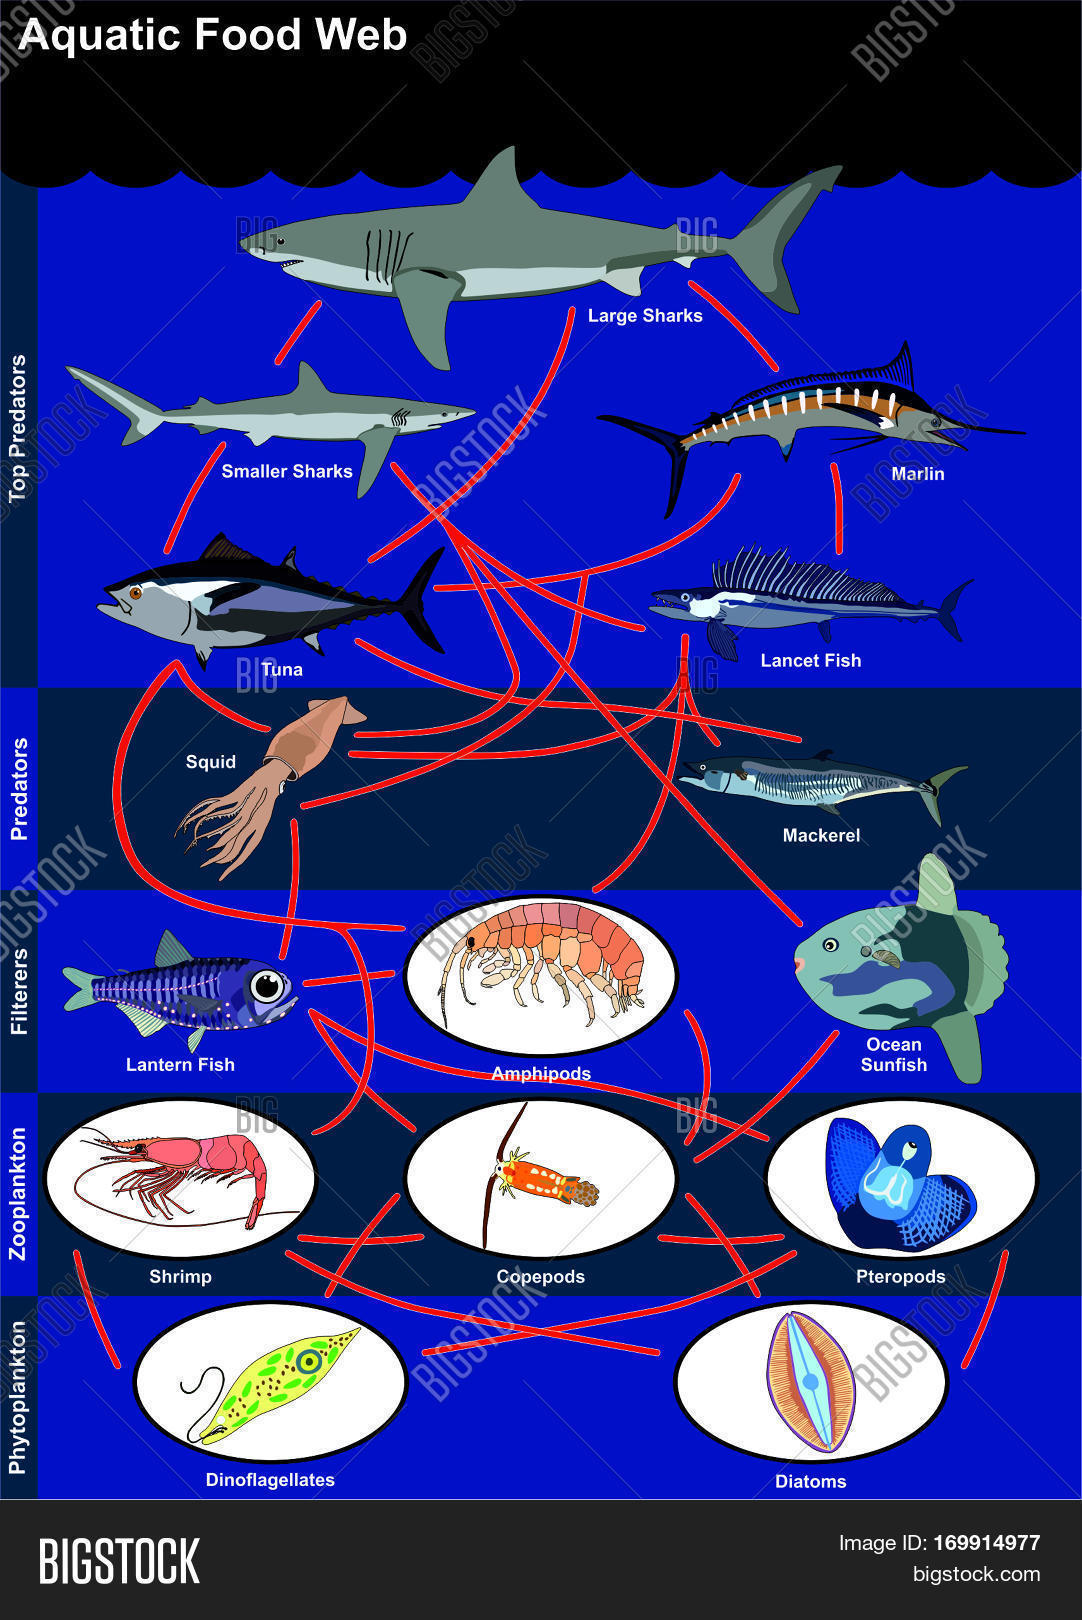 Aquatic Food Web Image Amp Photo Free Trial